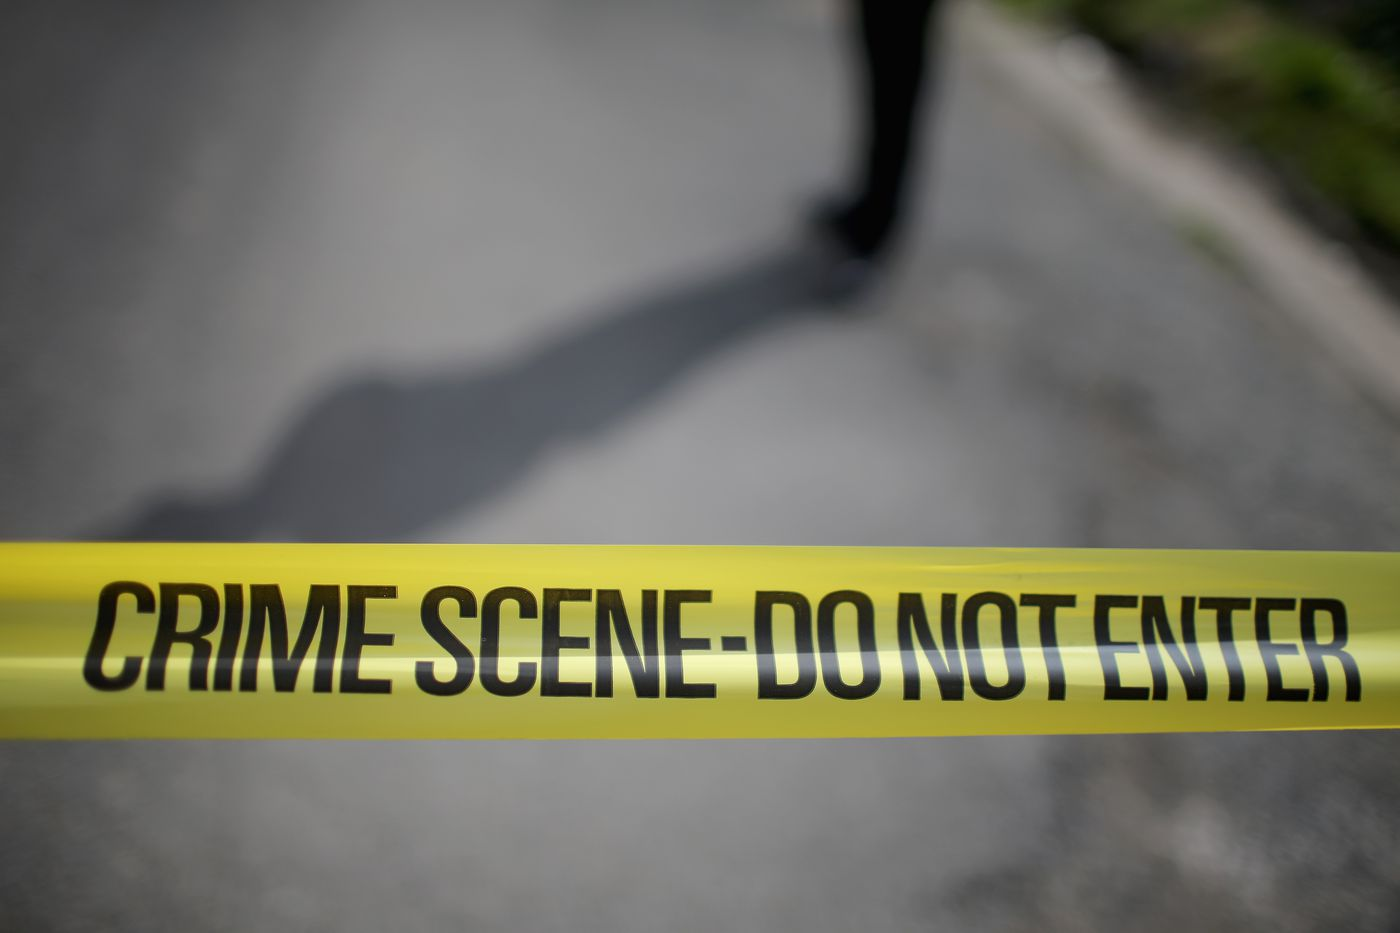 The great majority of violent crime in America goes unsolved